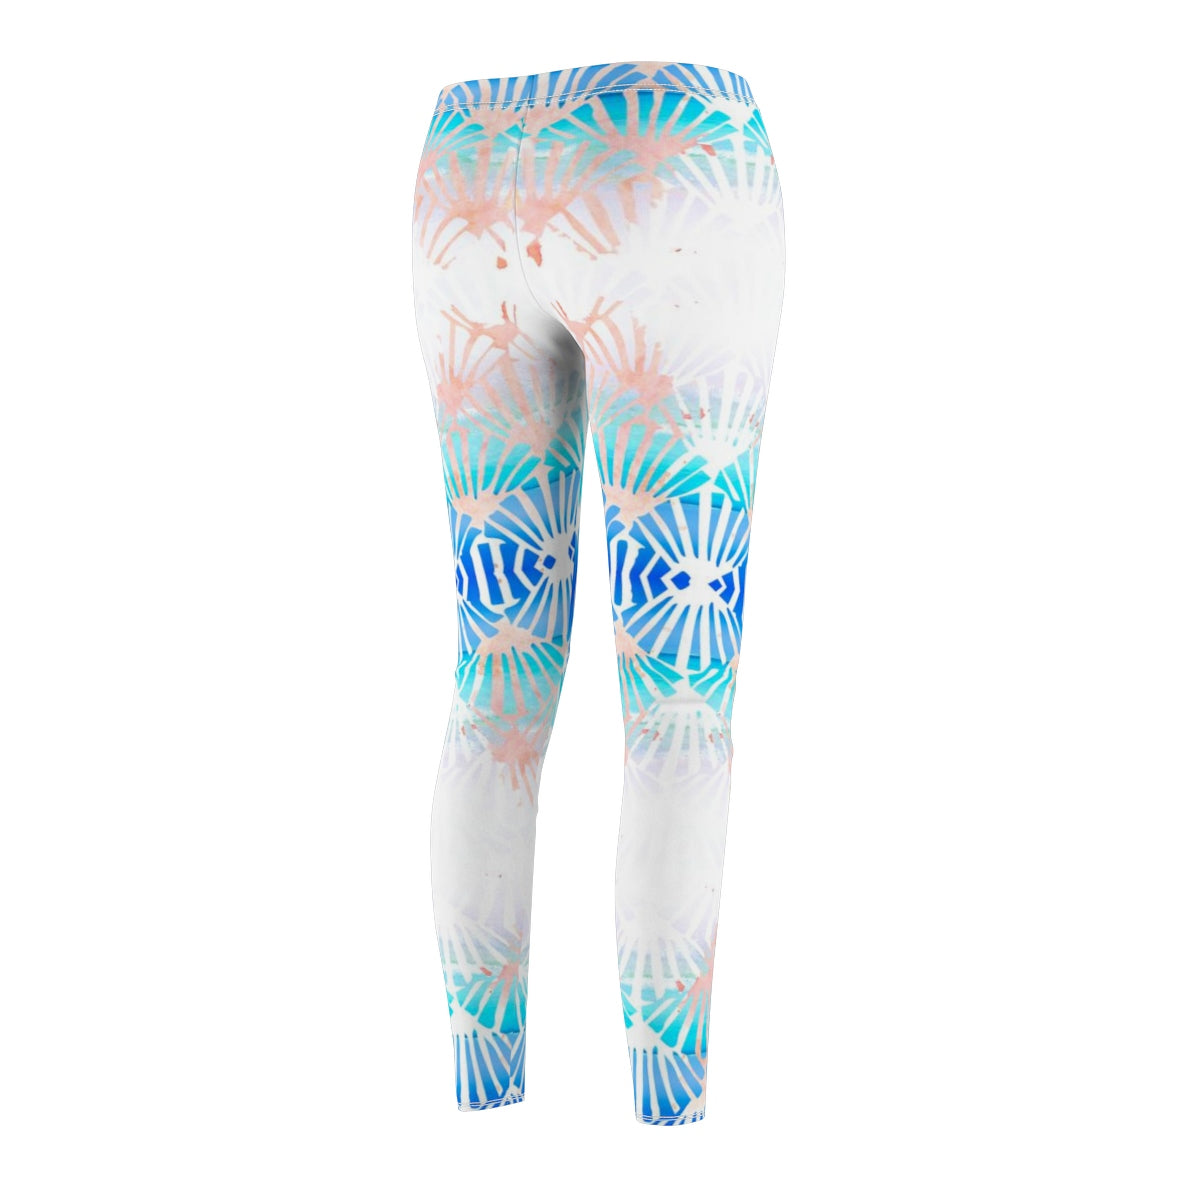 Fiji Islands #0008 (Leggings)